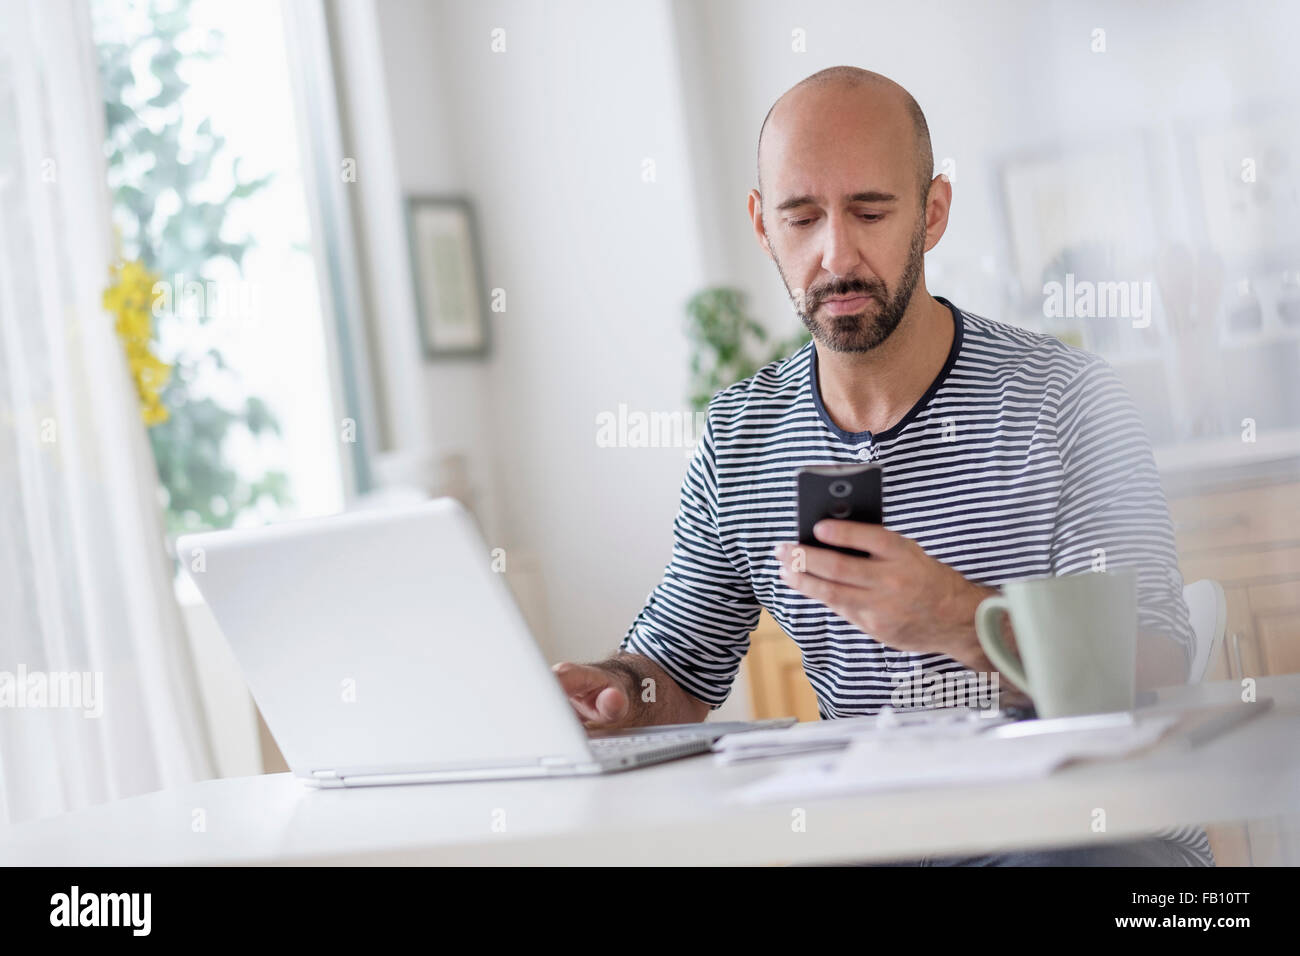 Man working with laptop and holding smart phone at table - Stock Image